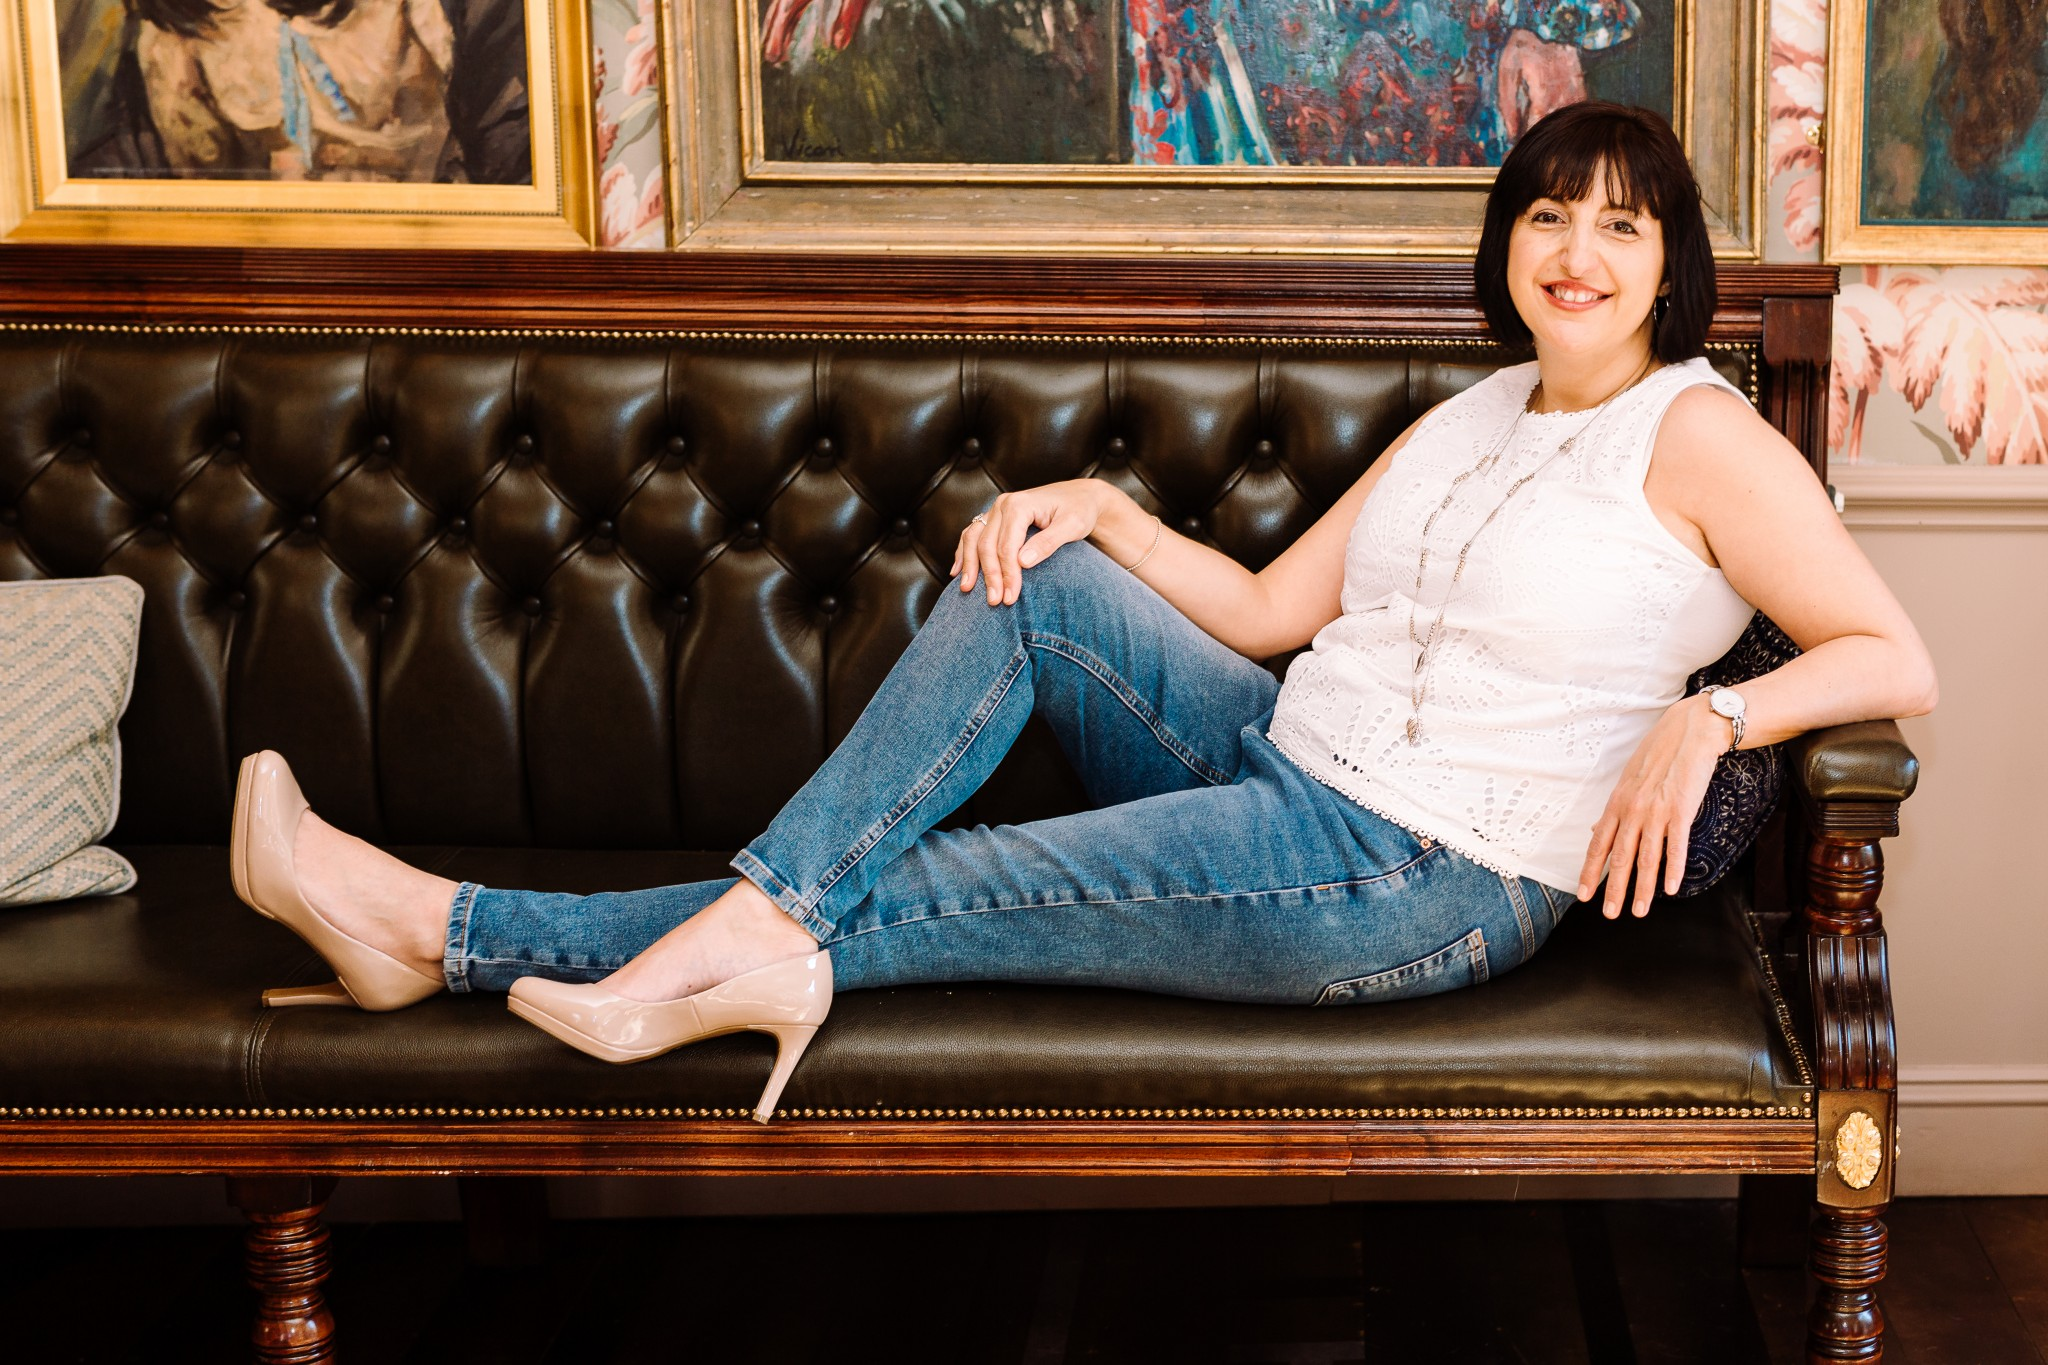 A woman sits on a wooden sofa, wearing jeans and high heels.